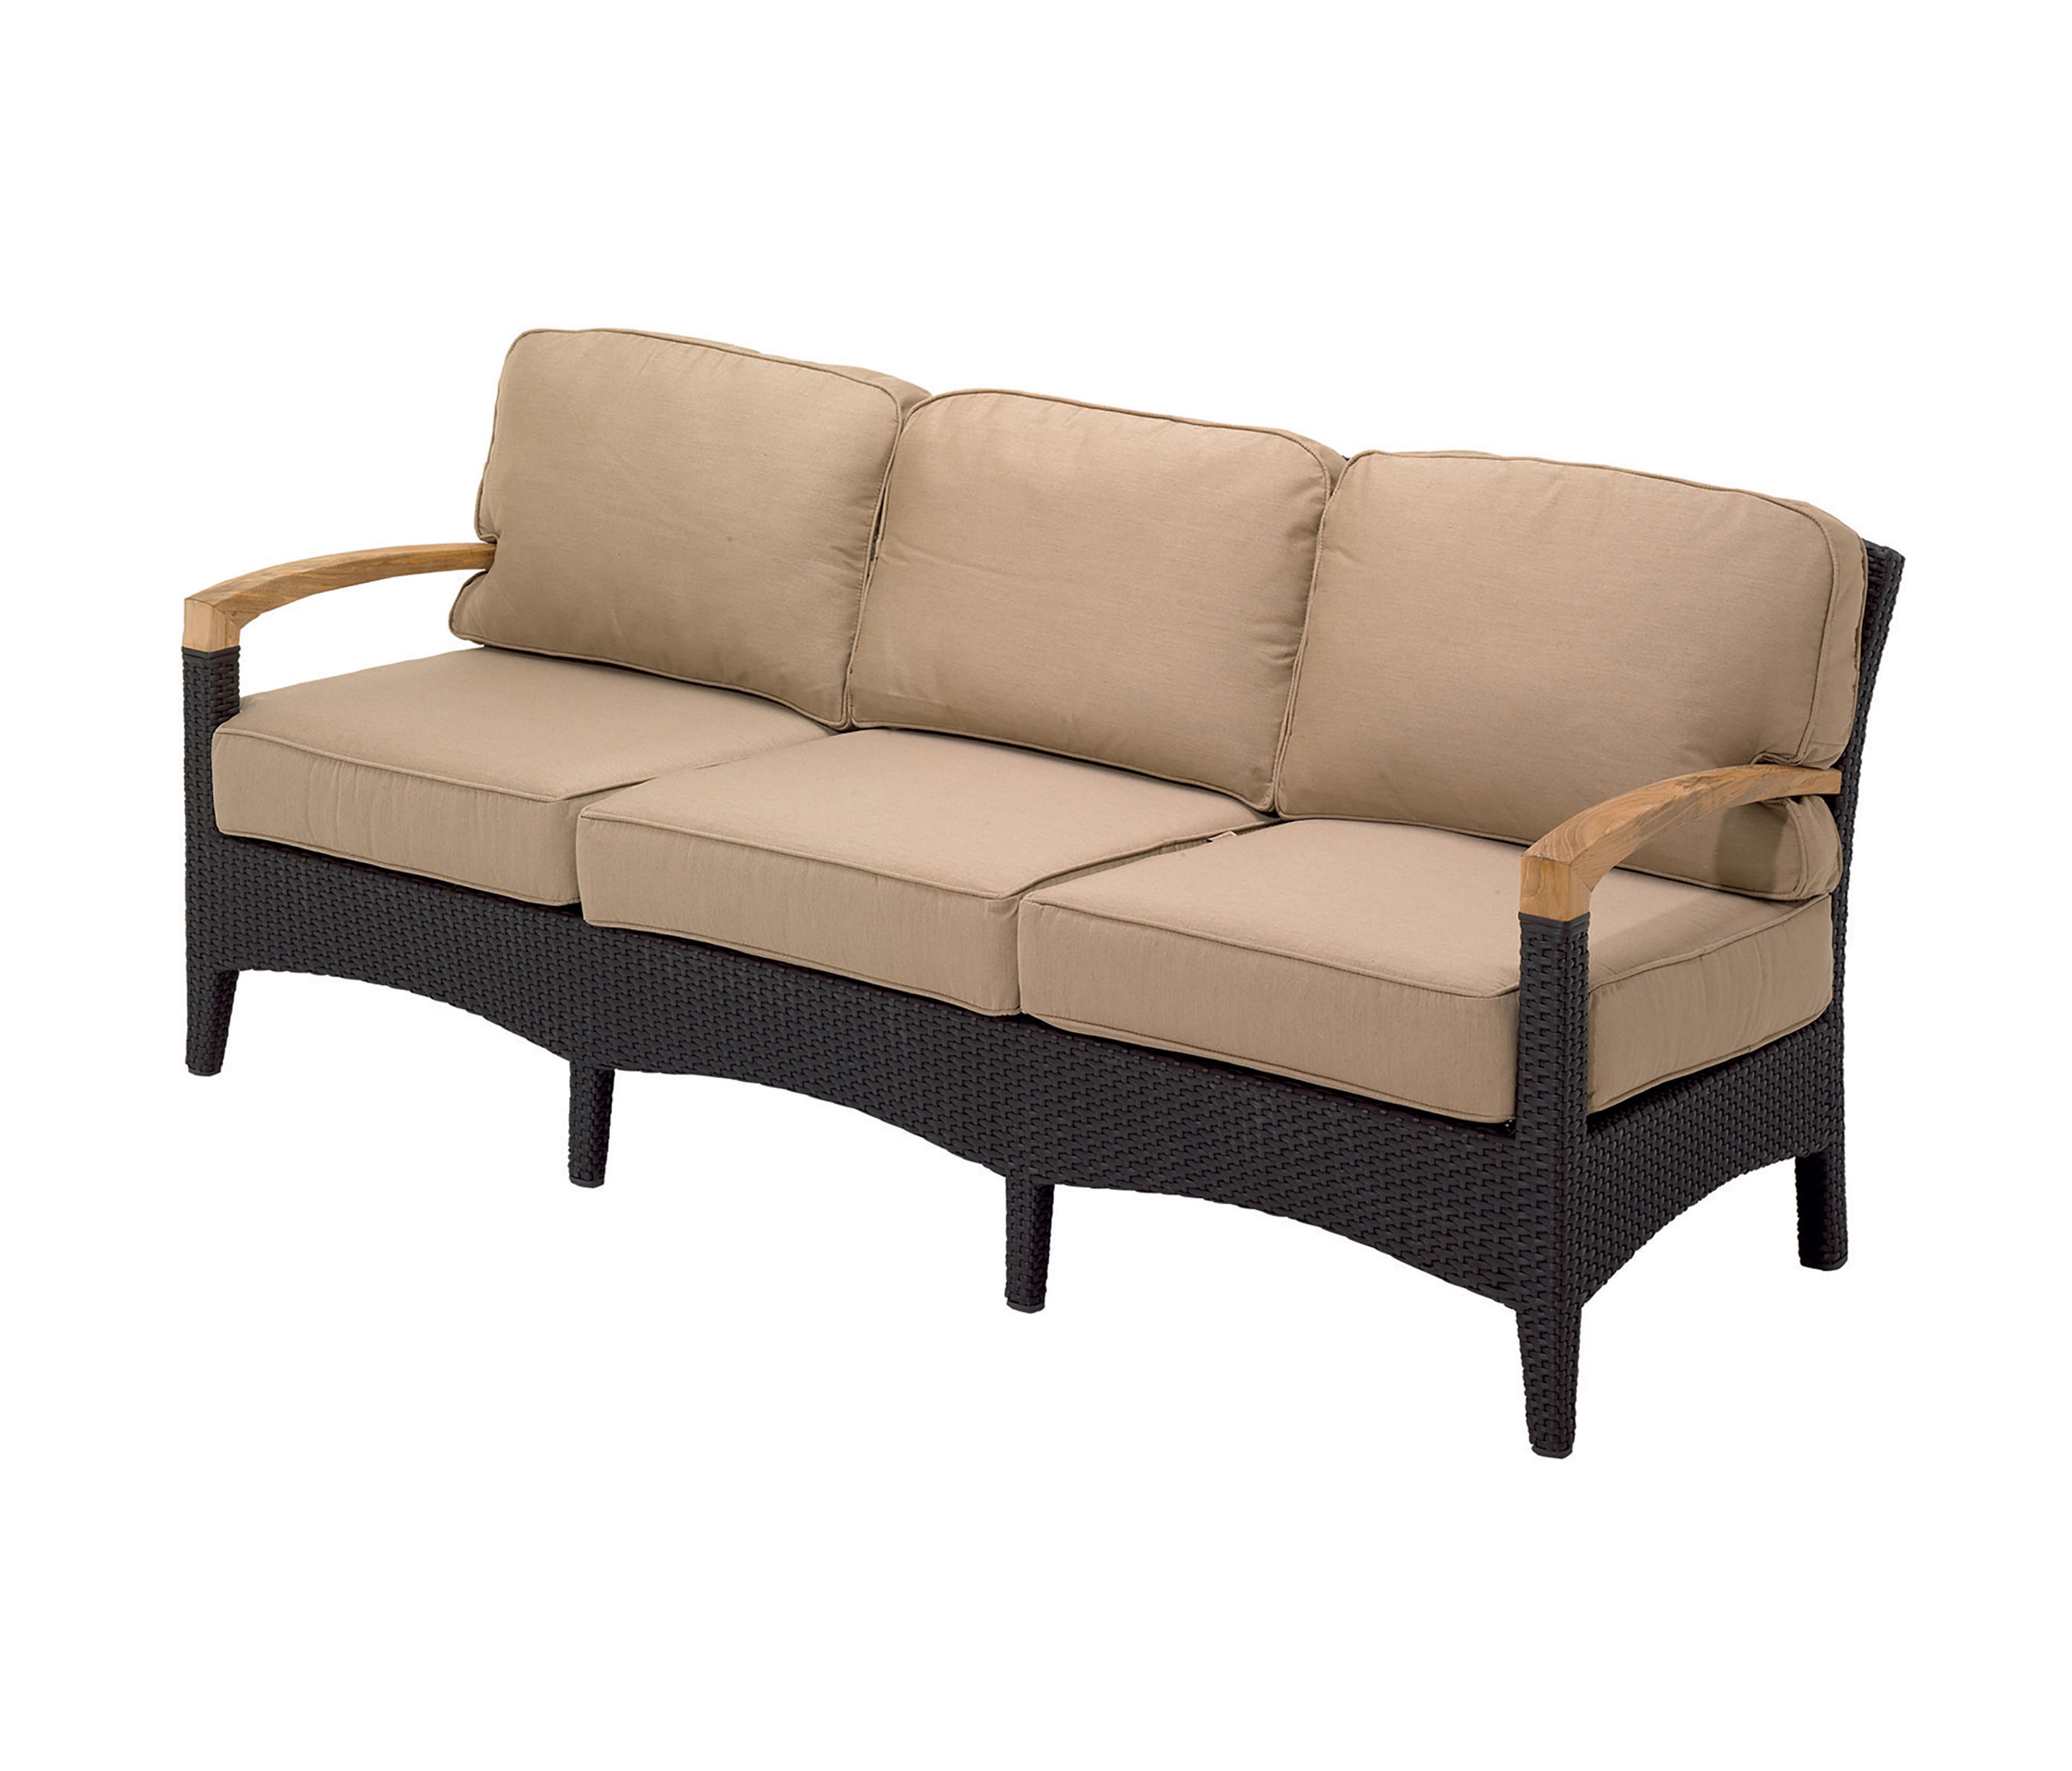 Plantation Deep Seating 3 Seater Sofa Sofas From Gloster